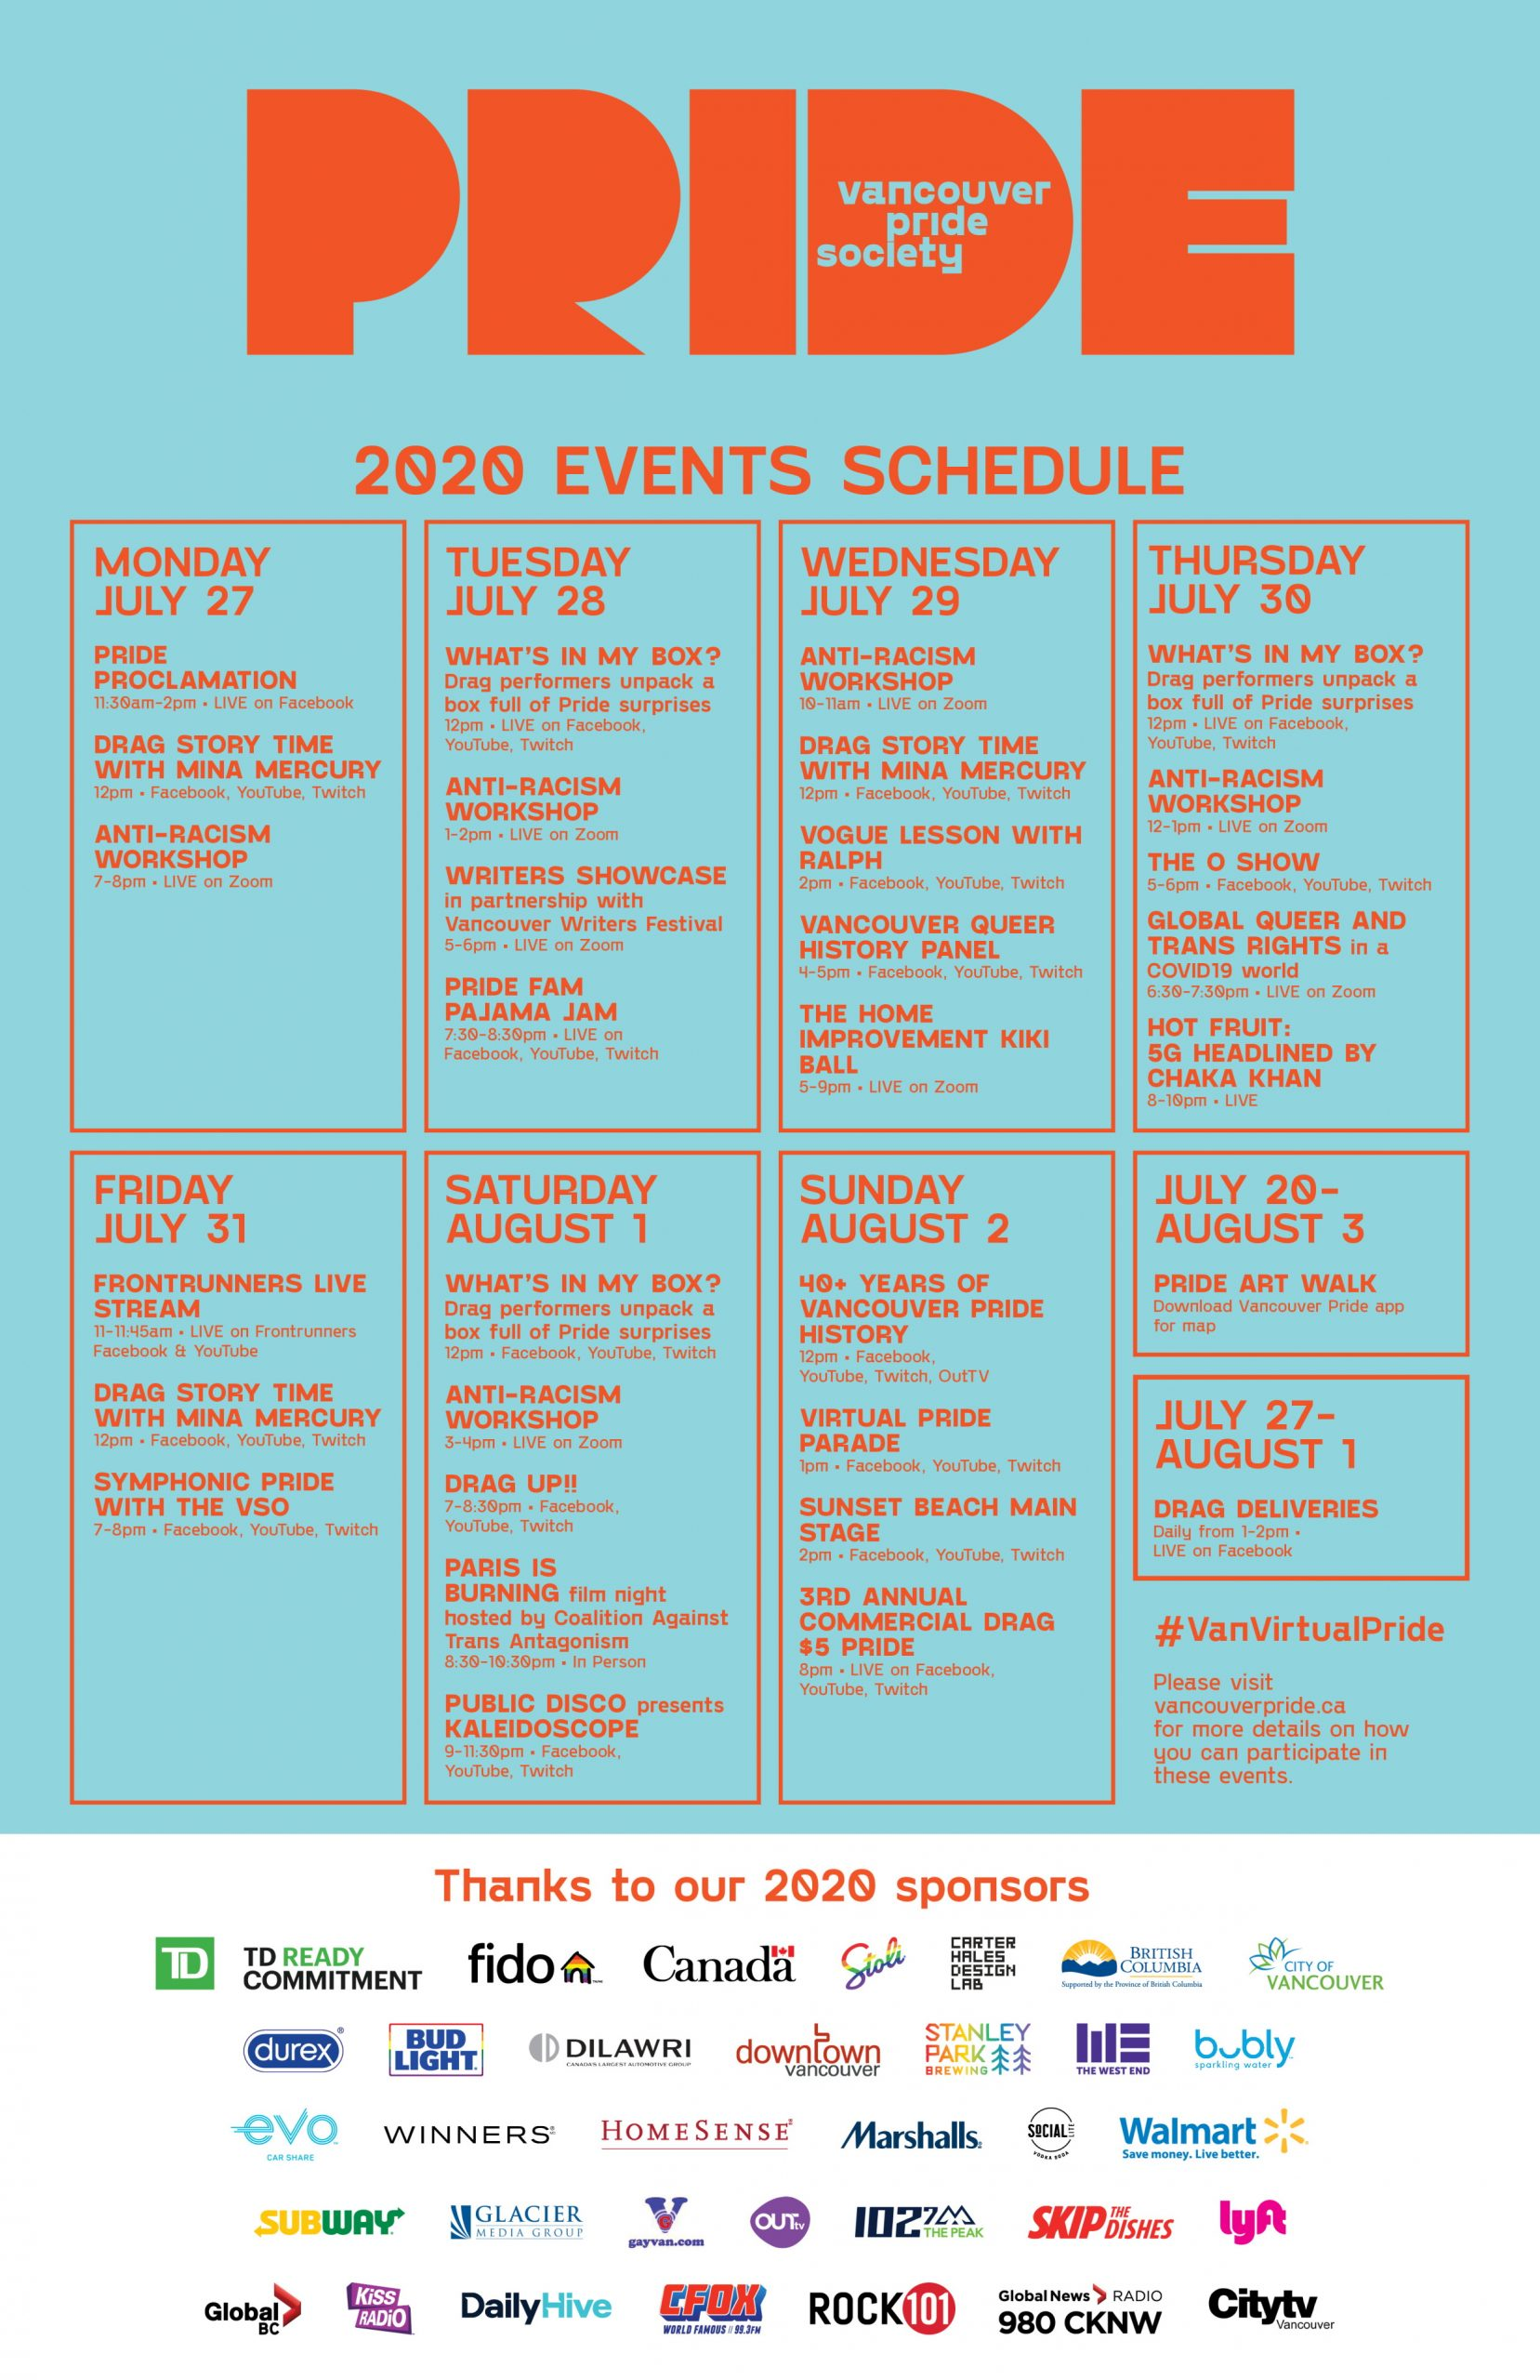 An Event Schedule graphic containing dates and times for Van Pride 2020 events. All event details listed on this page.